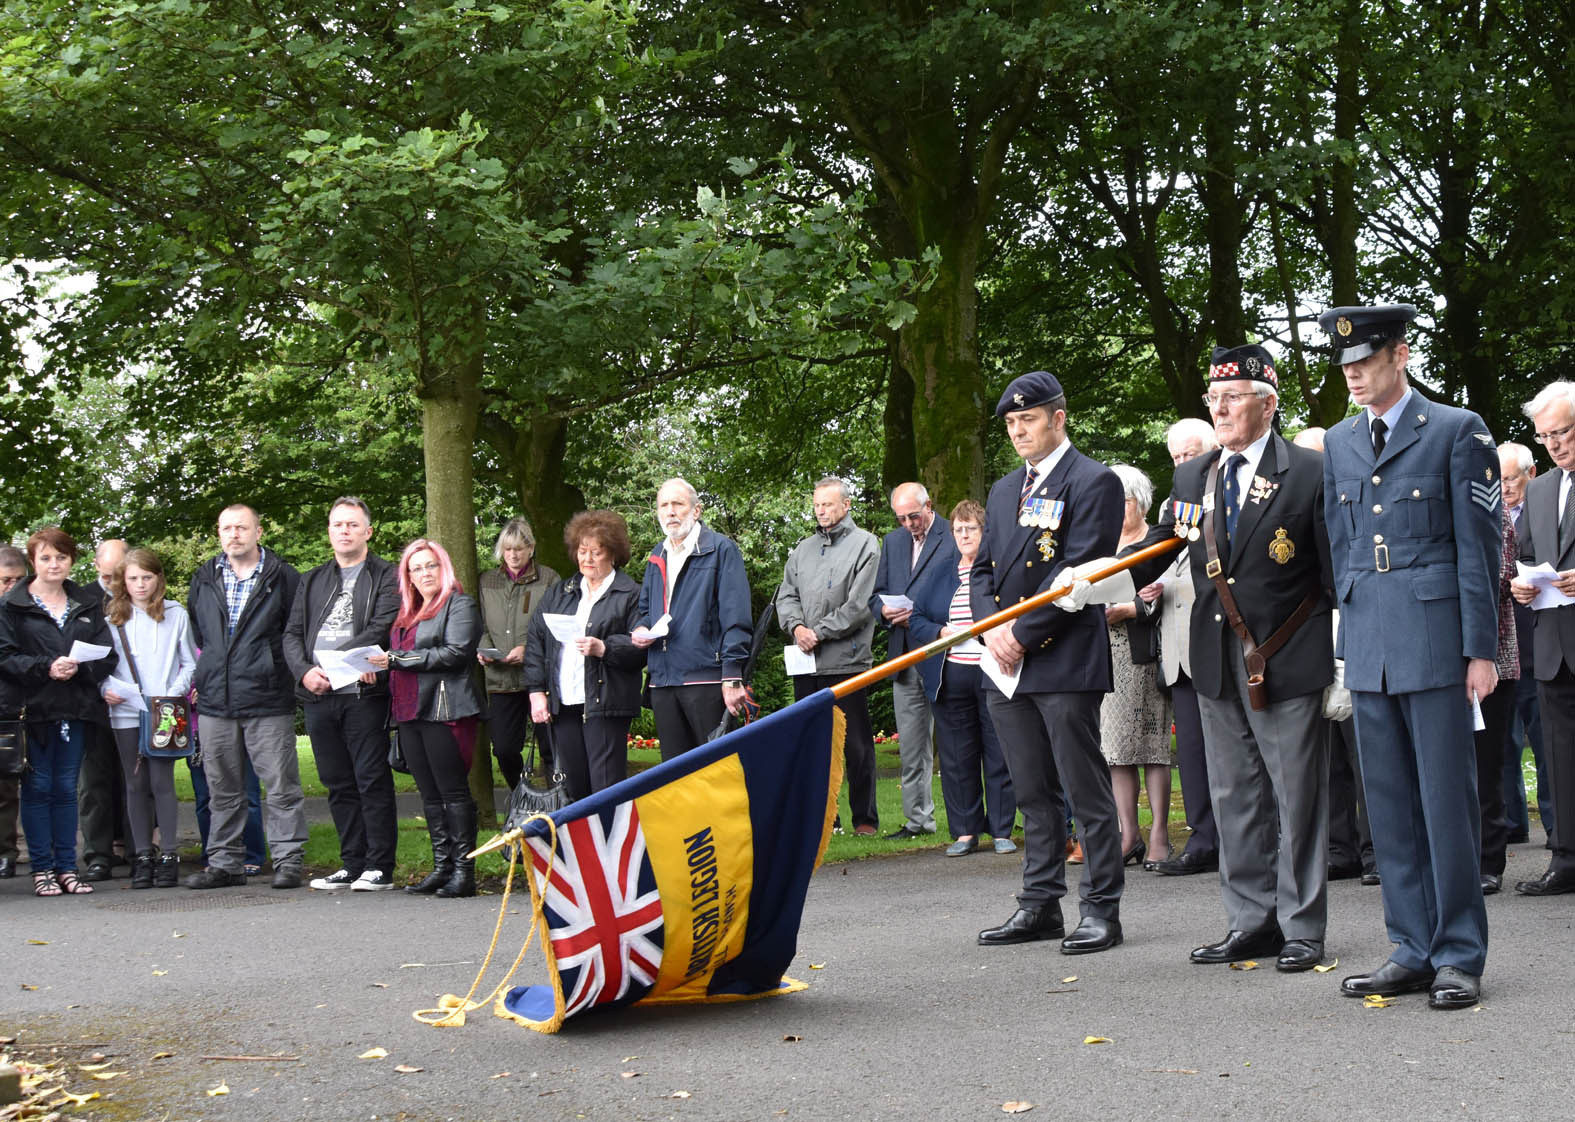 A short service of dedication was held at Blackrod Cenotaph on 10th July 2016